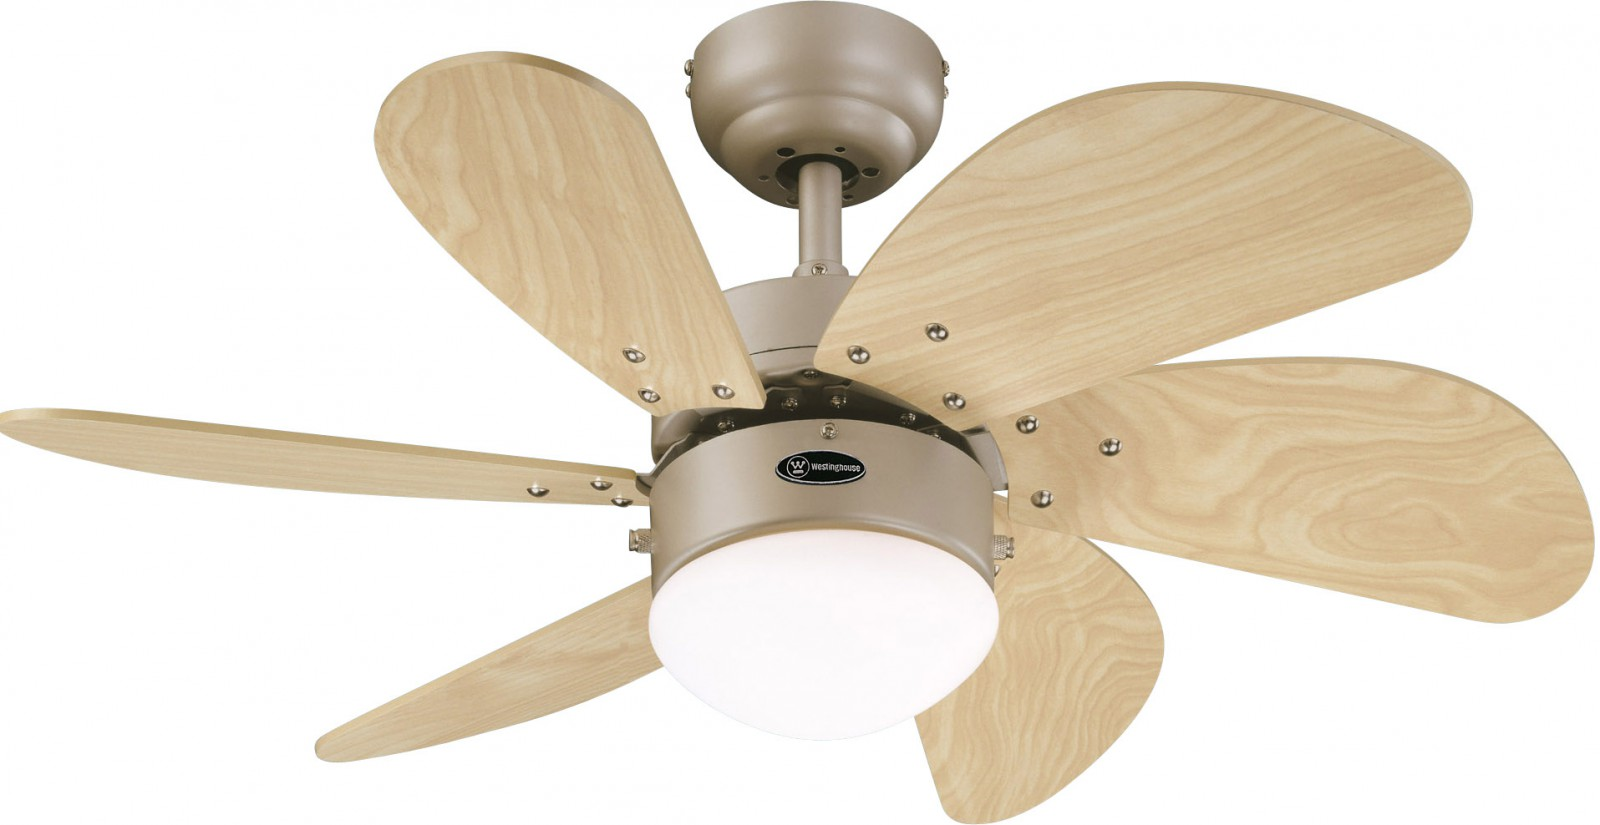 westinghouse ceiling fan turbo swirl titanium 76 cm 30 with lighting ceiling fans for. Black Bedroom Furniture Sets. Home Design Ideas